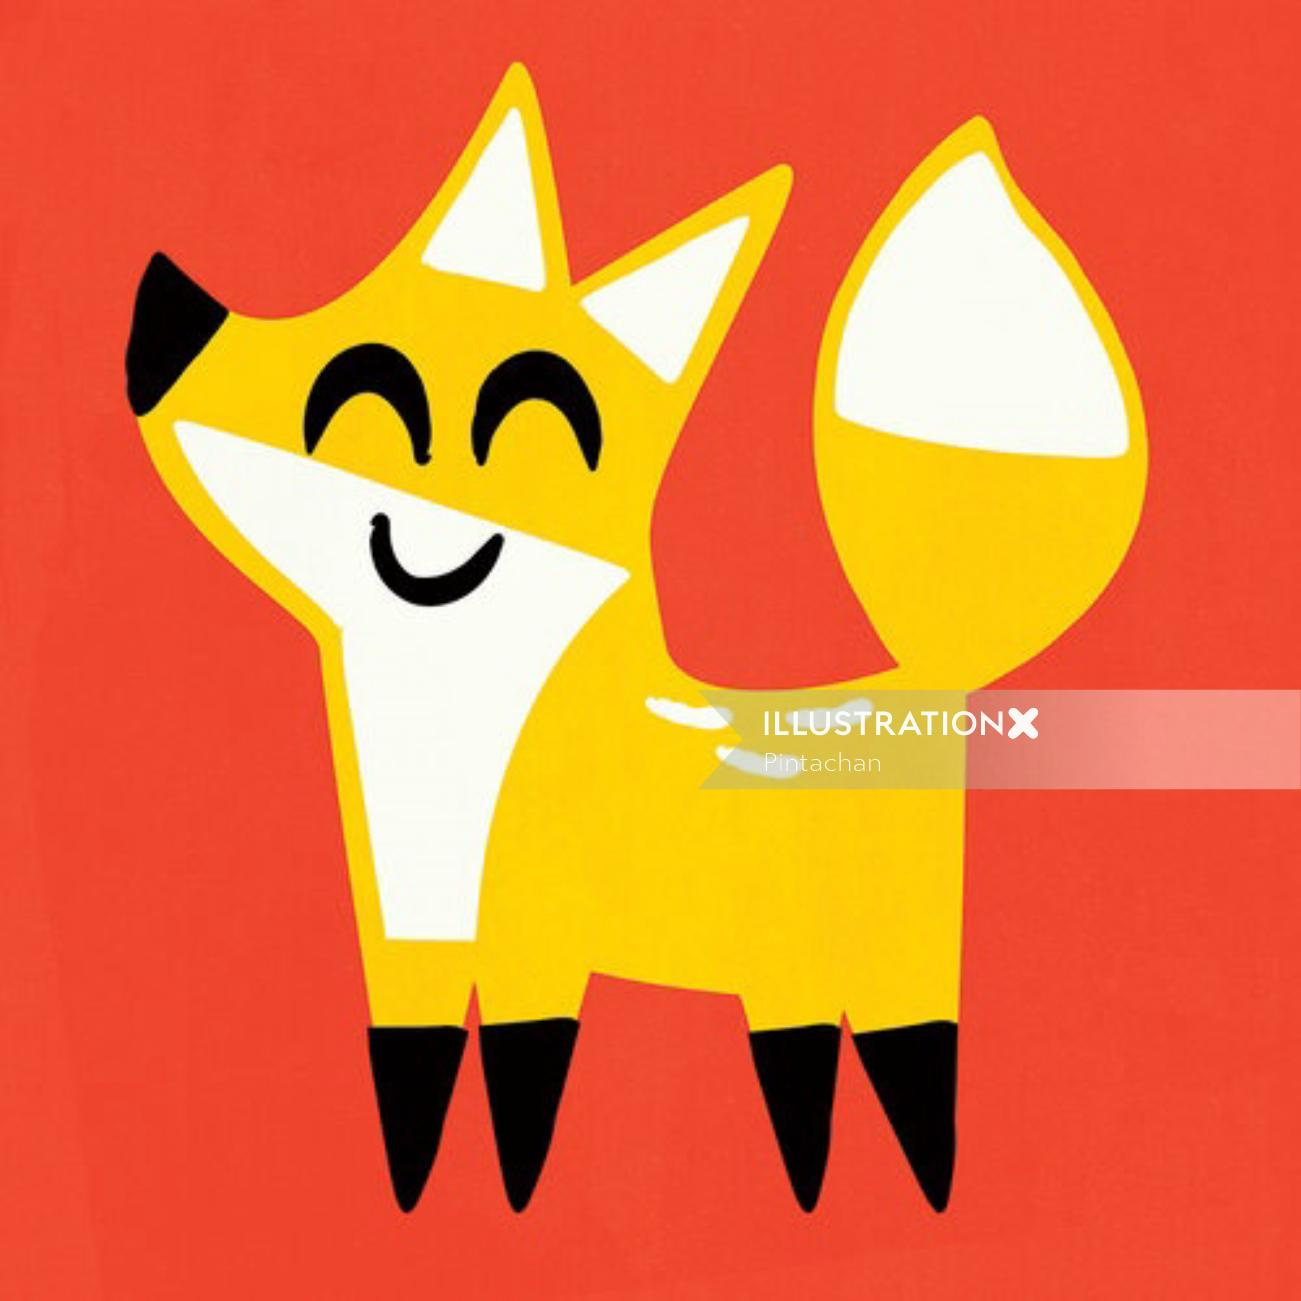 Graphical design of cute smiling Fox